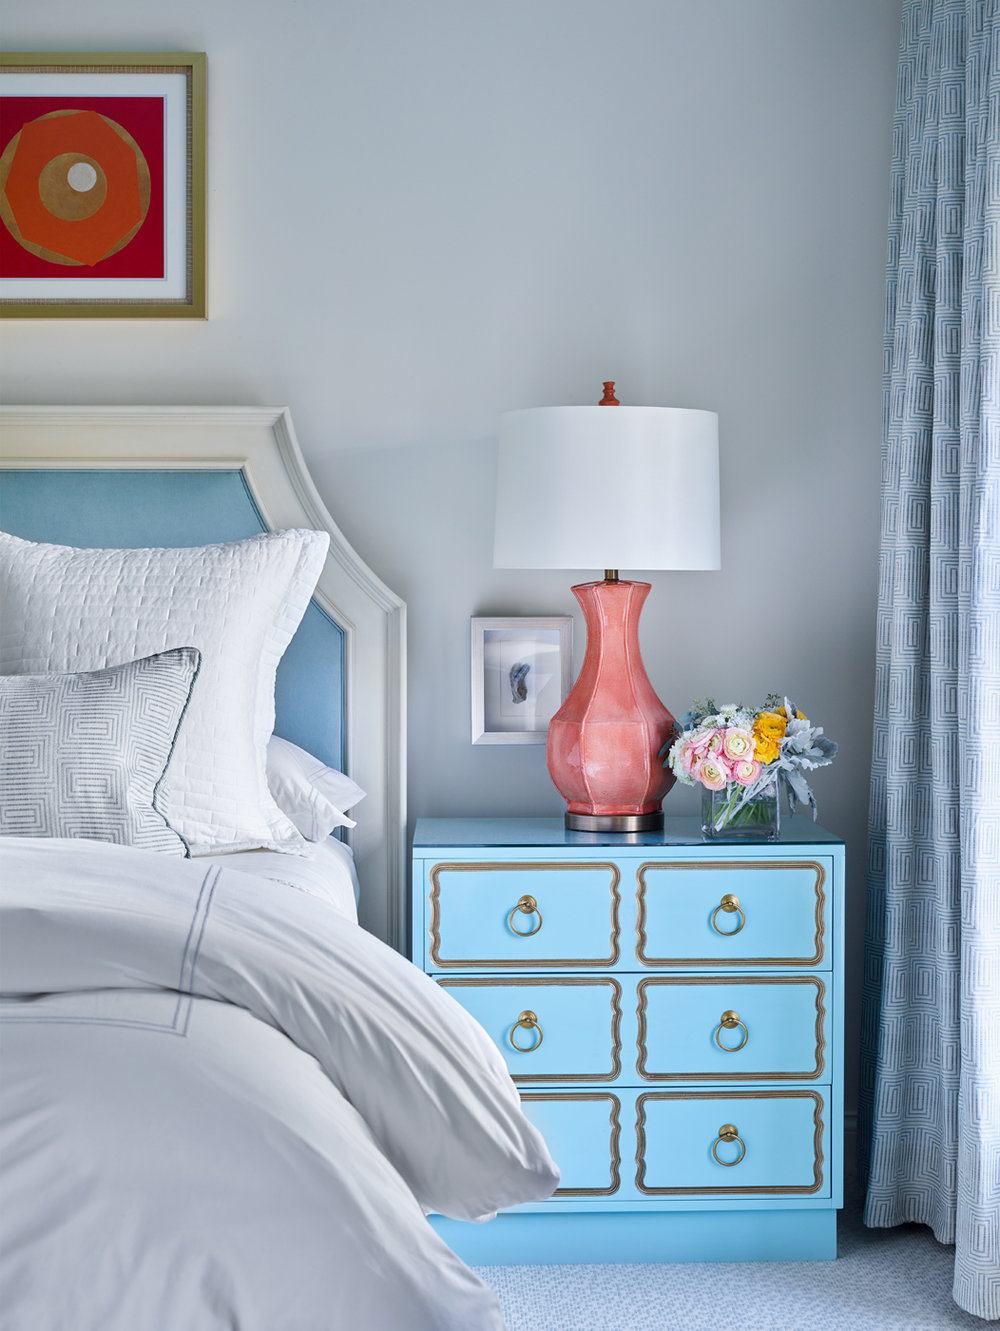 Upholstered blue and white headboard in bedroom; Dorothy Draper Espana chest in blue; coral color lamp | Savage Interior Design